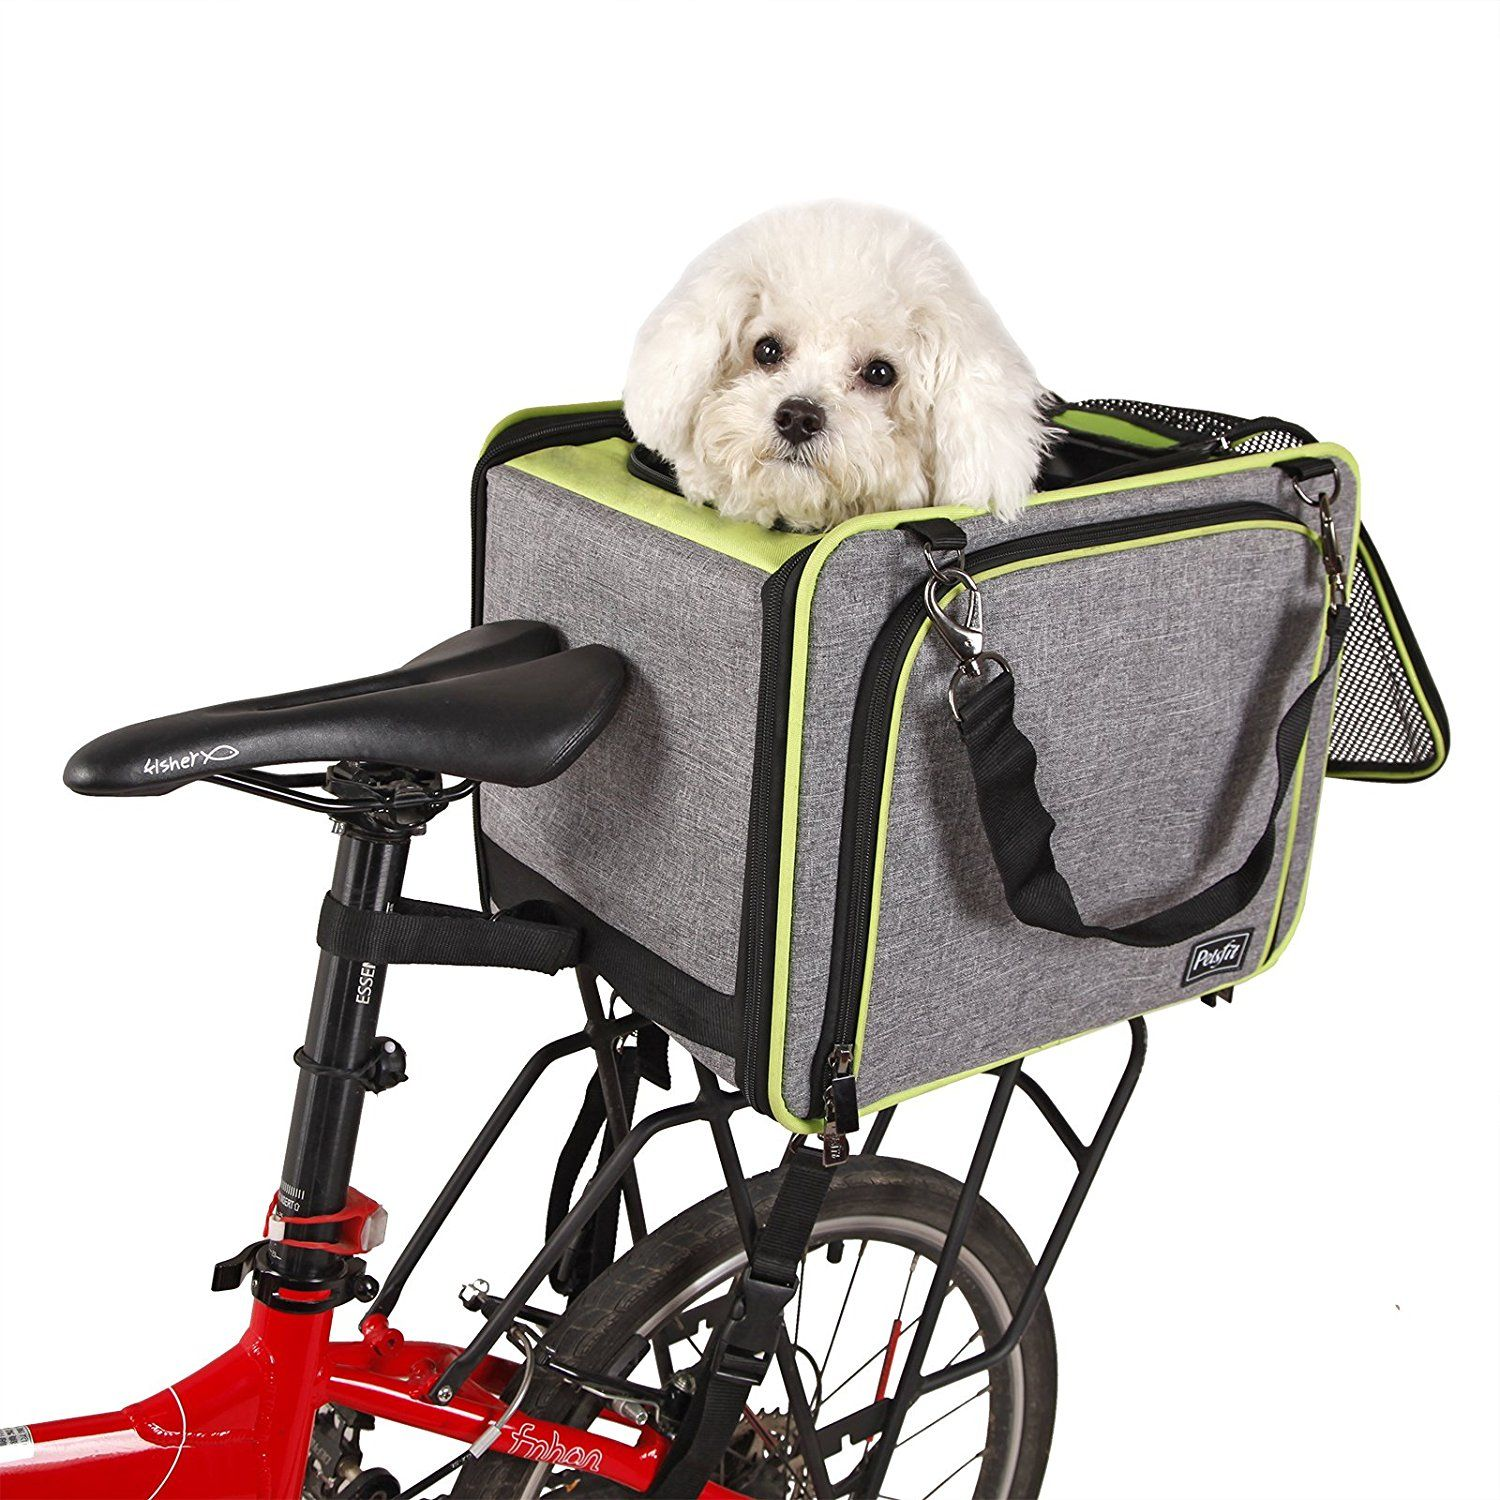 Petsfit Dog Baskets/Pet Carrier for Bicycle with Big Side